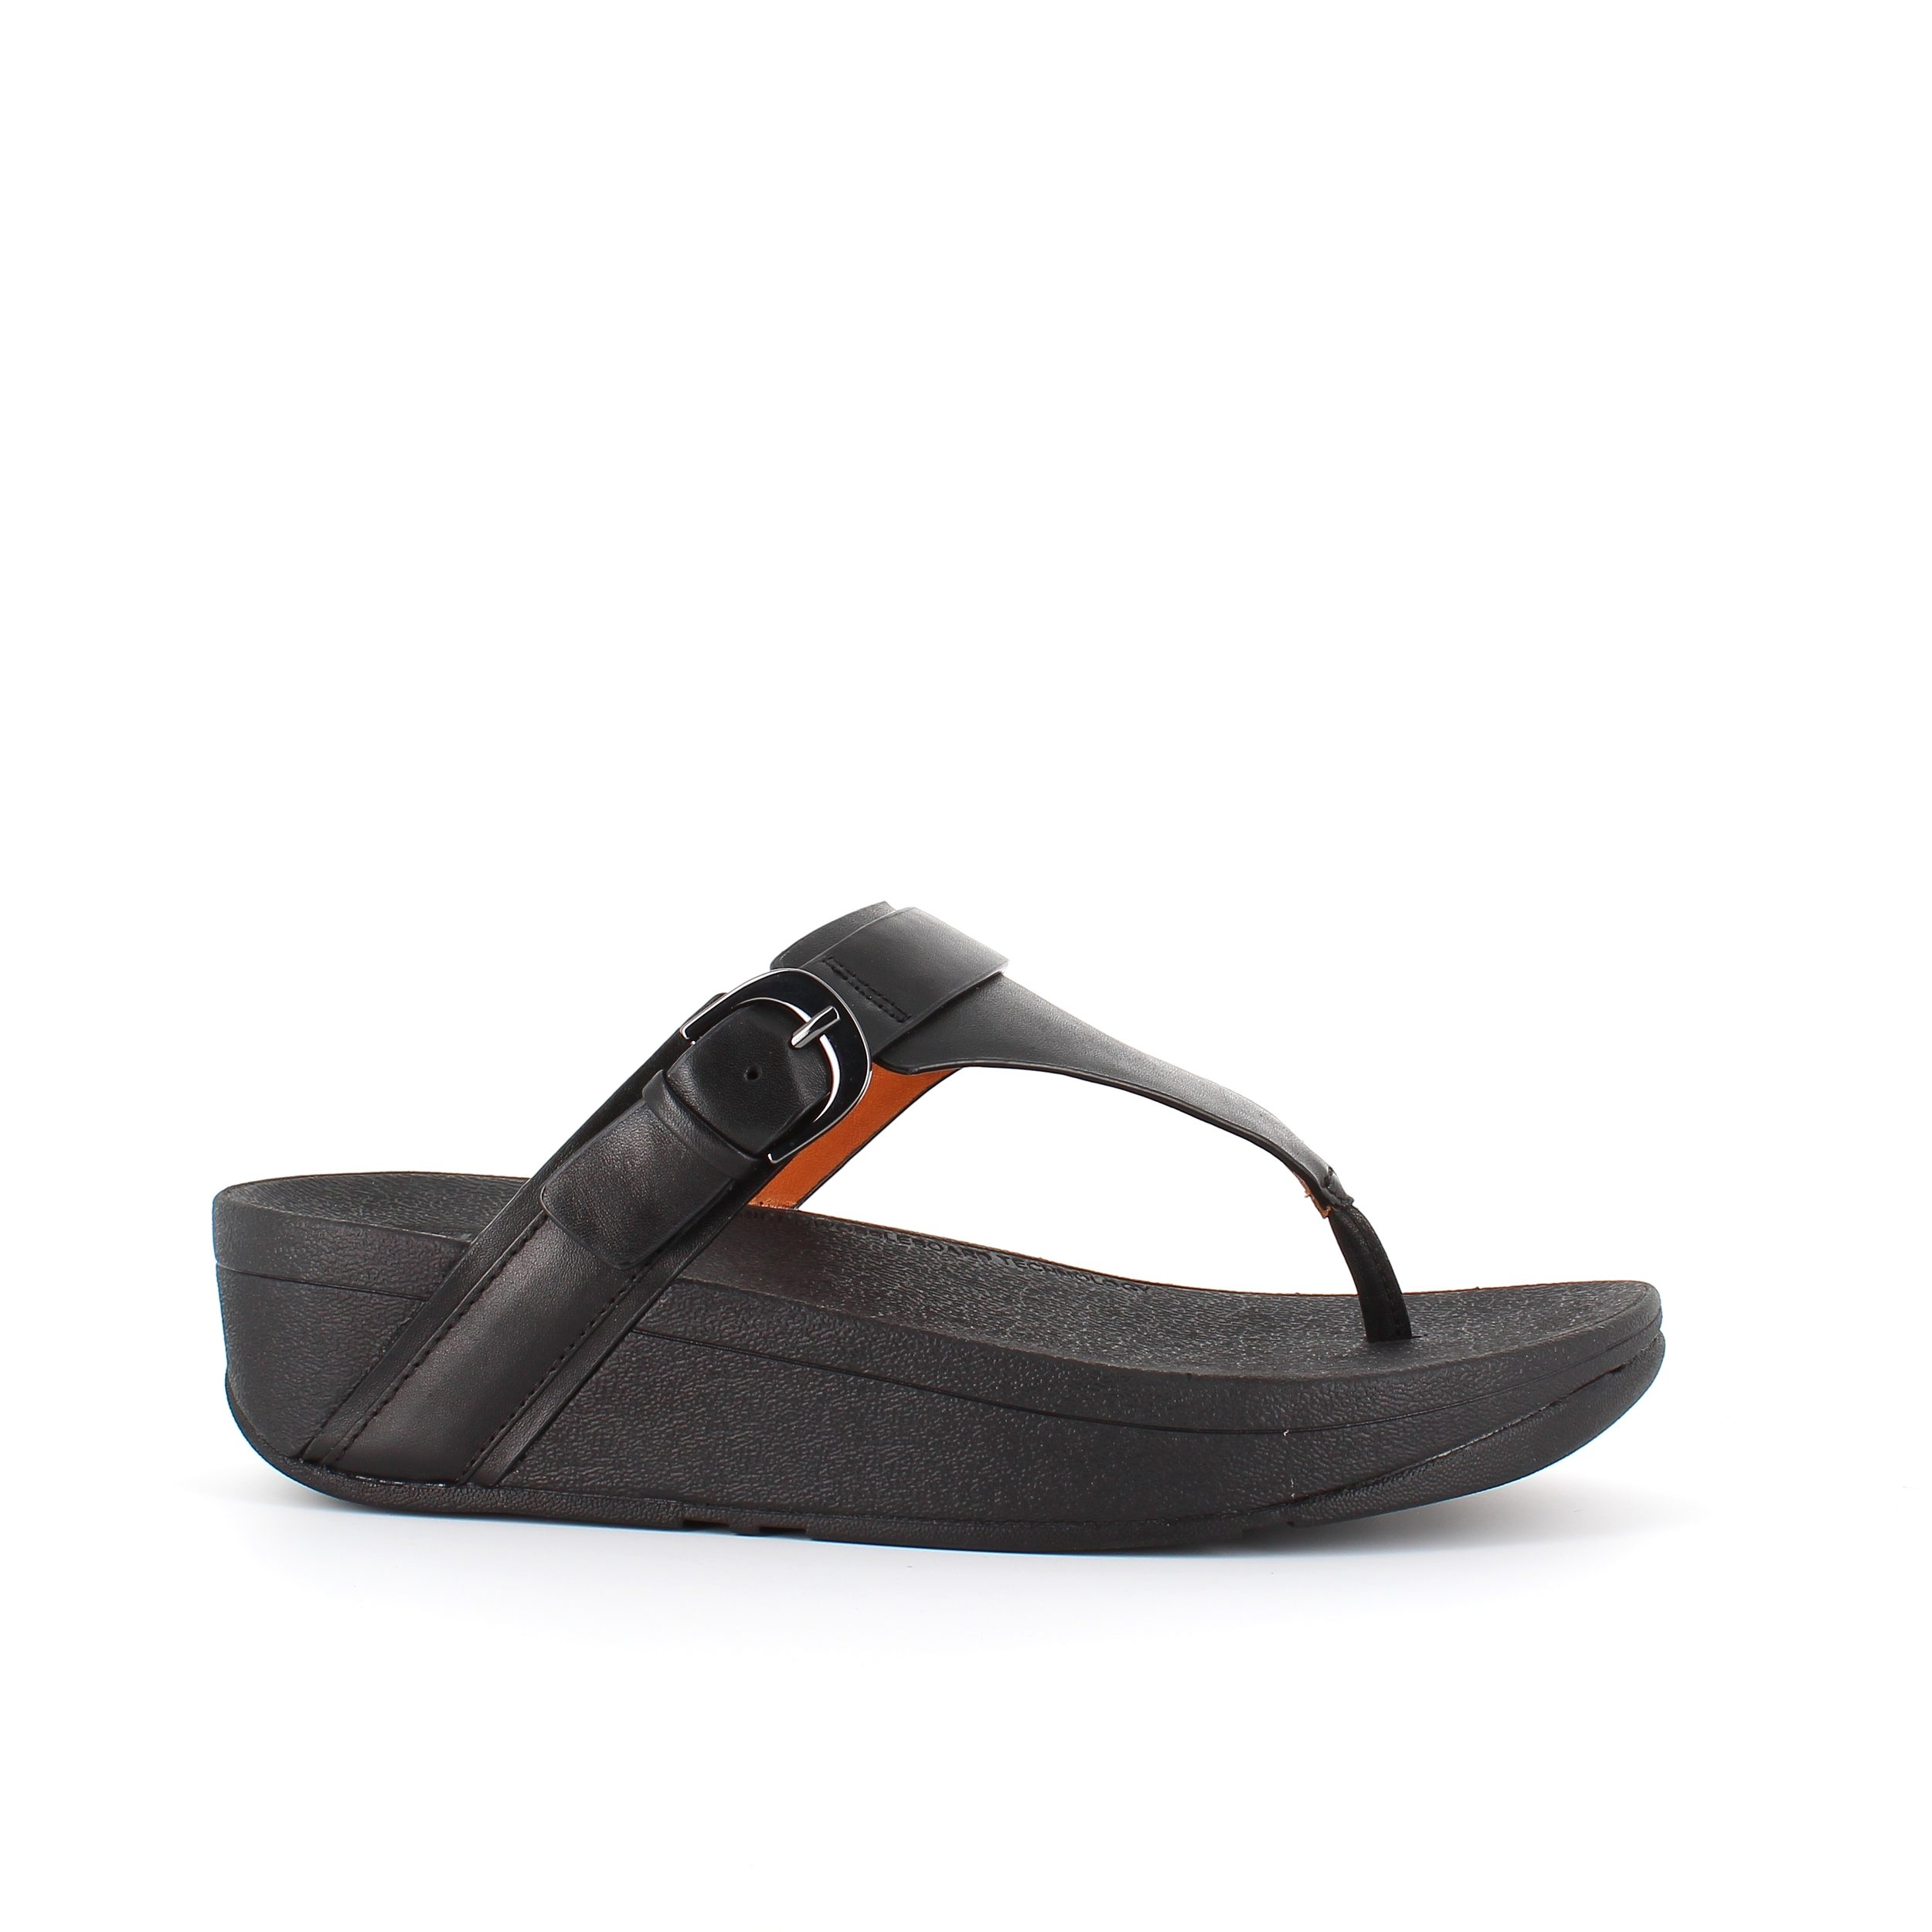 Image of   Edit fitflop sandal i læder - 37